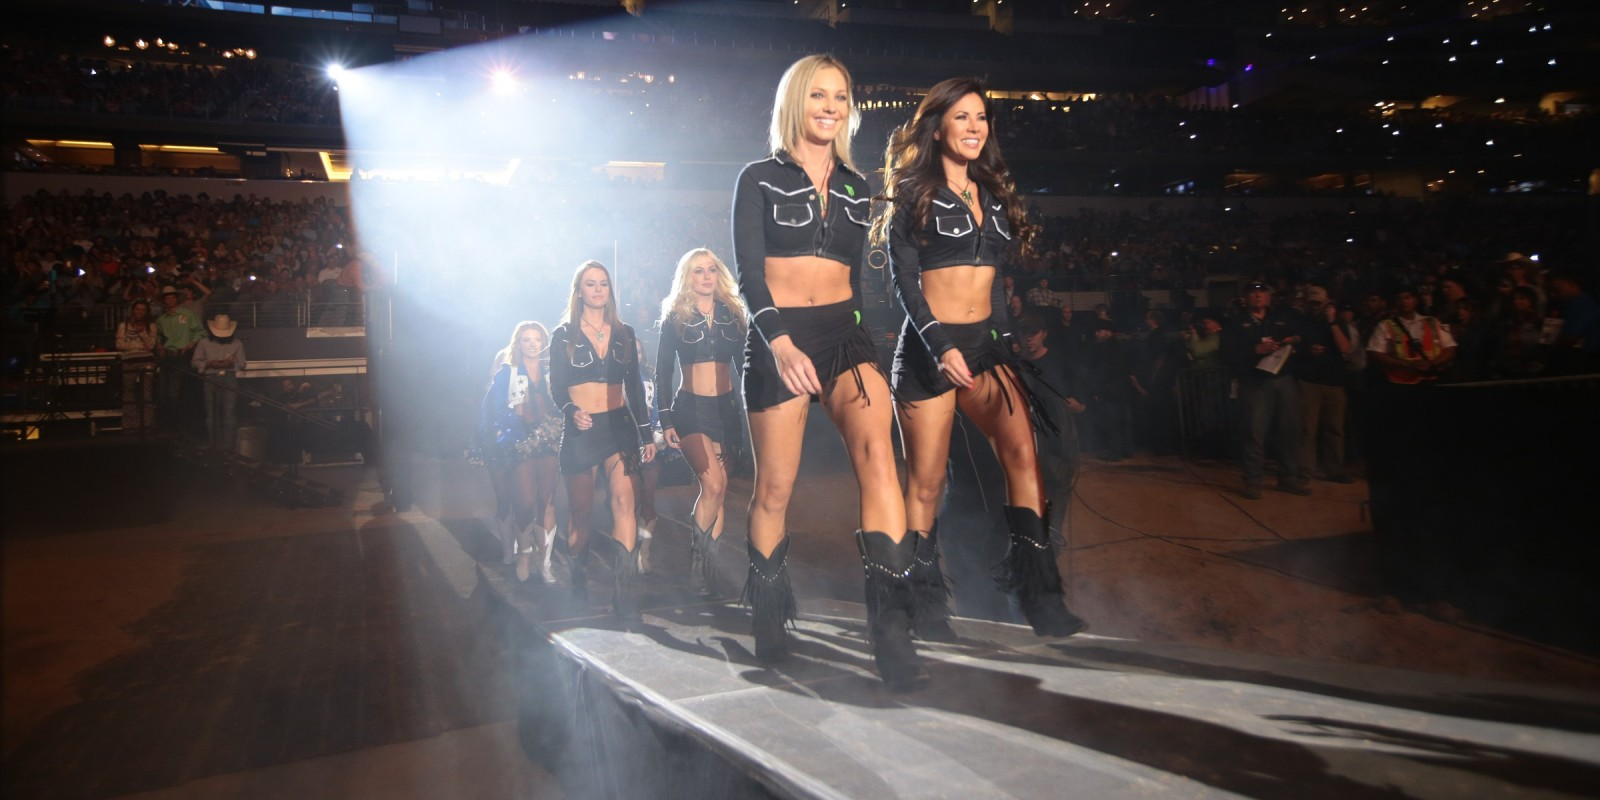 Monster Girls in the opening during the first round of the Iron Cowboy, Built Ford Tough series PBR